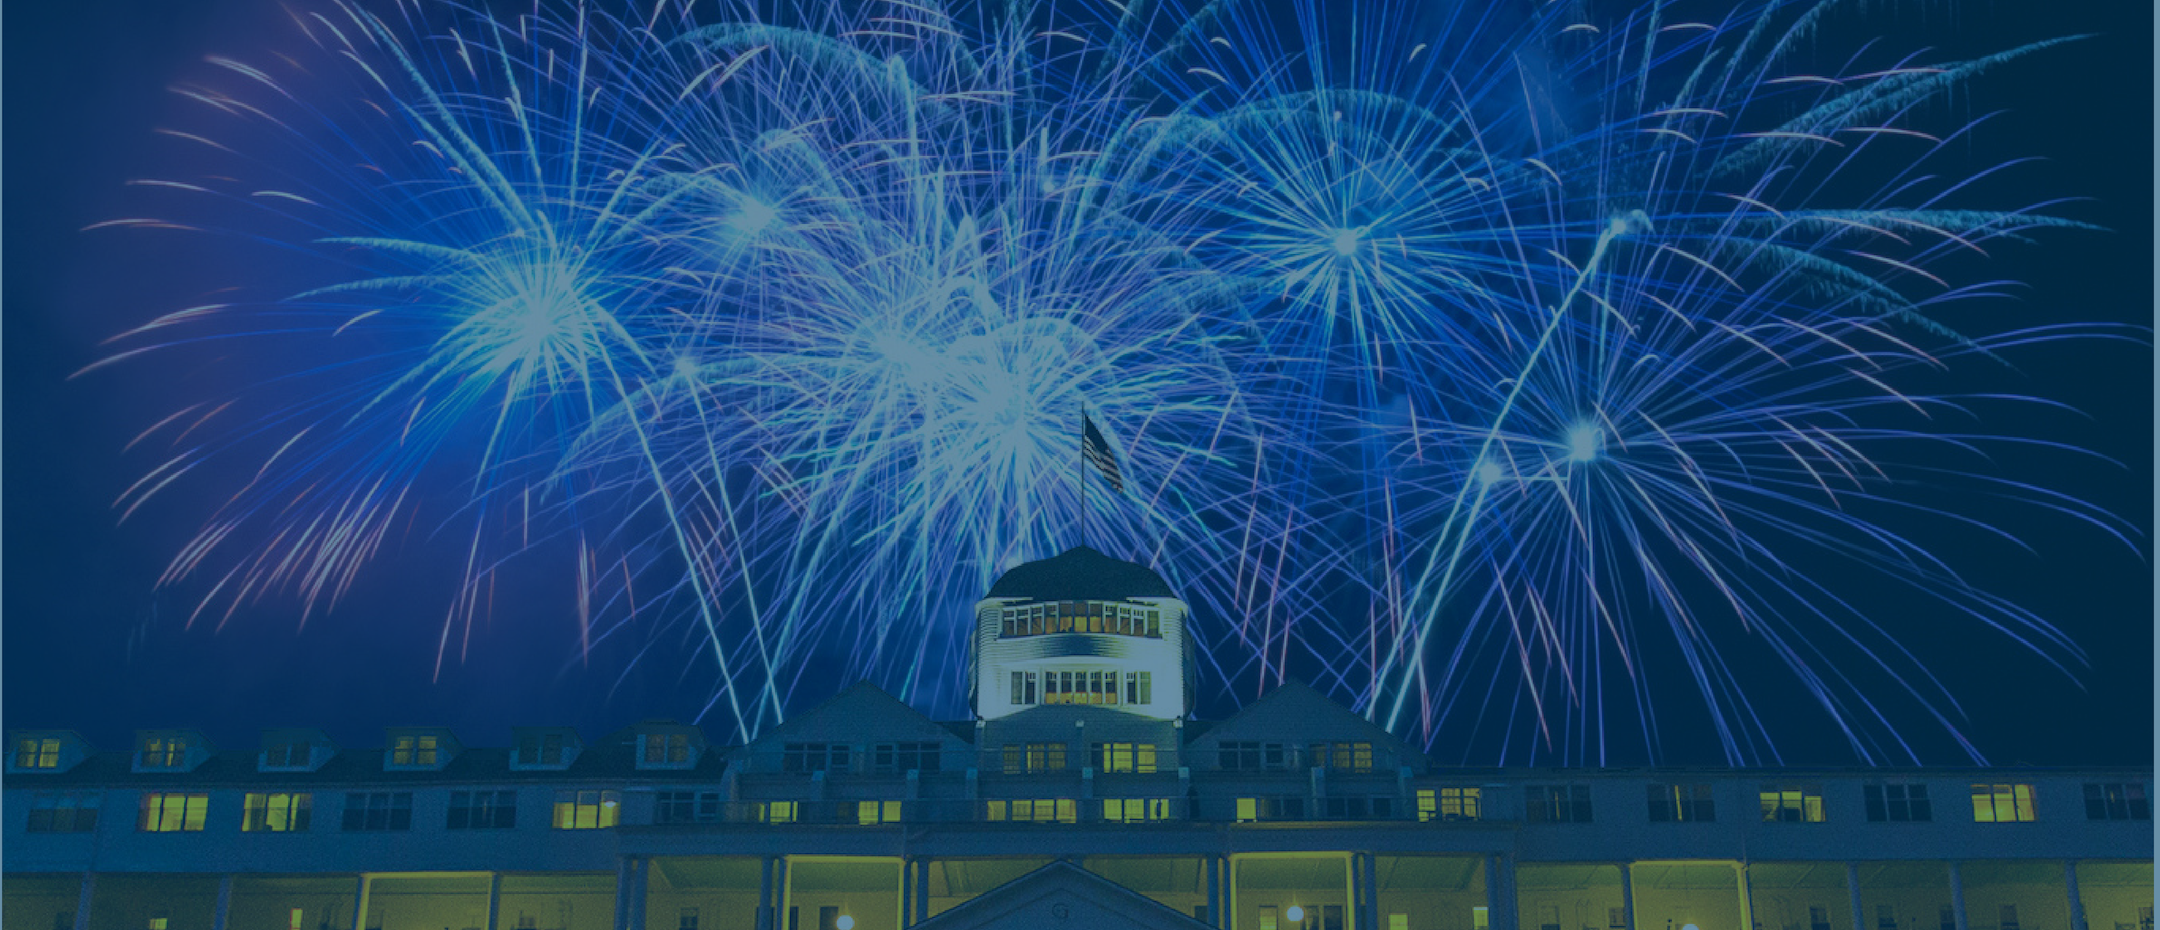 Fireworks over the Grand Hotel